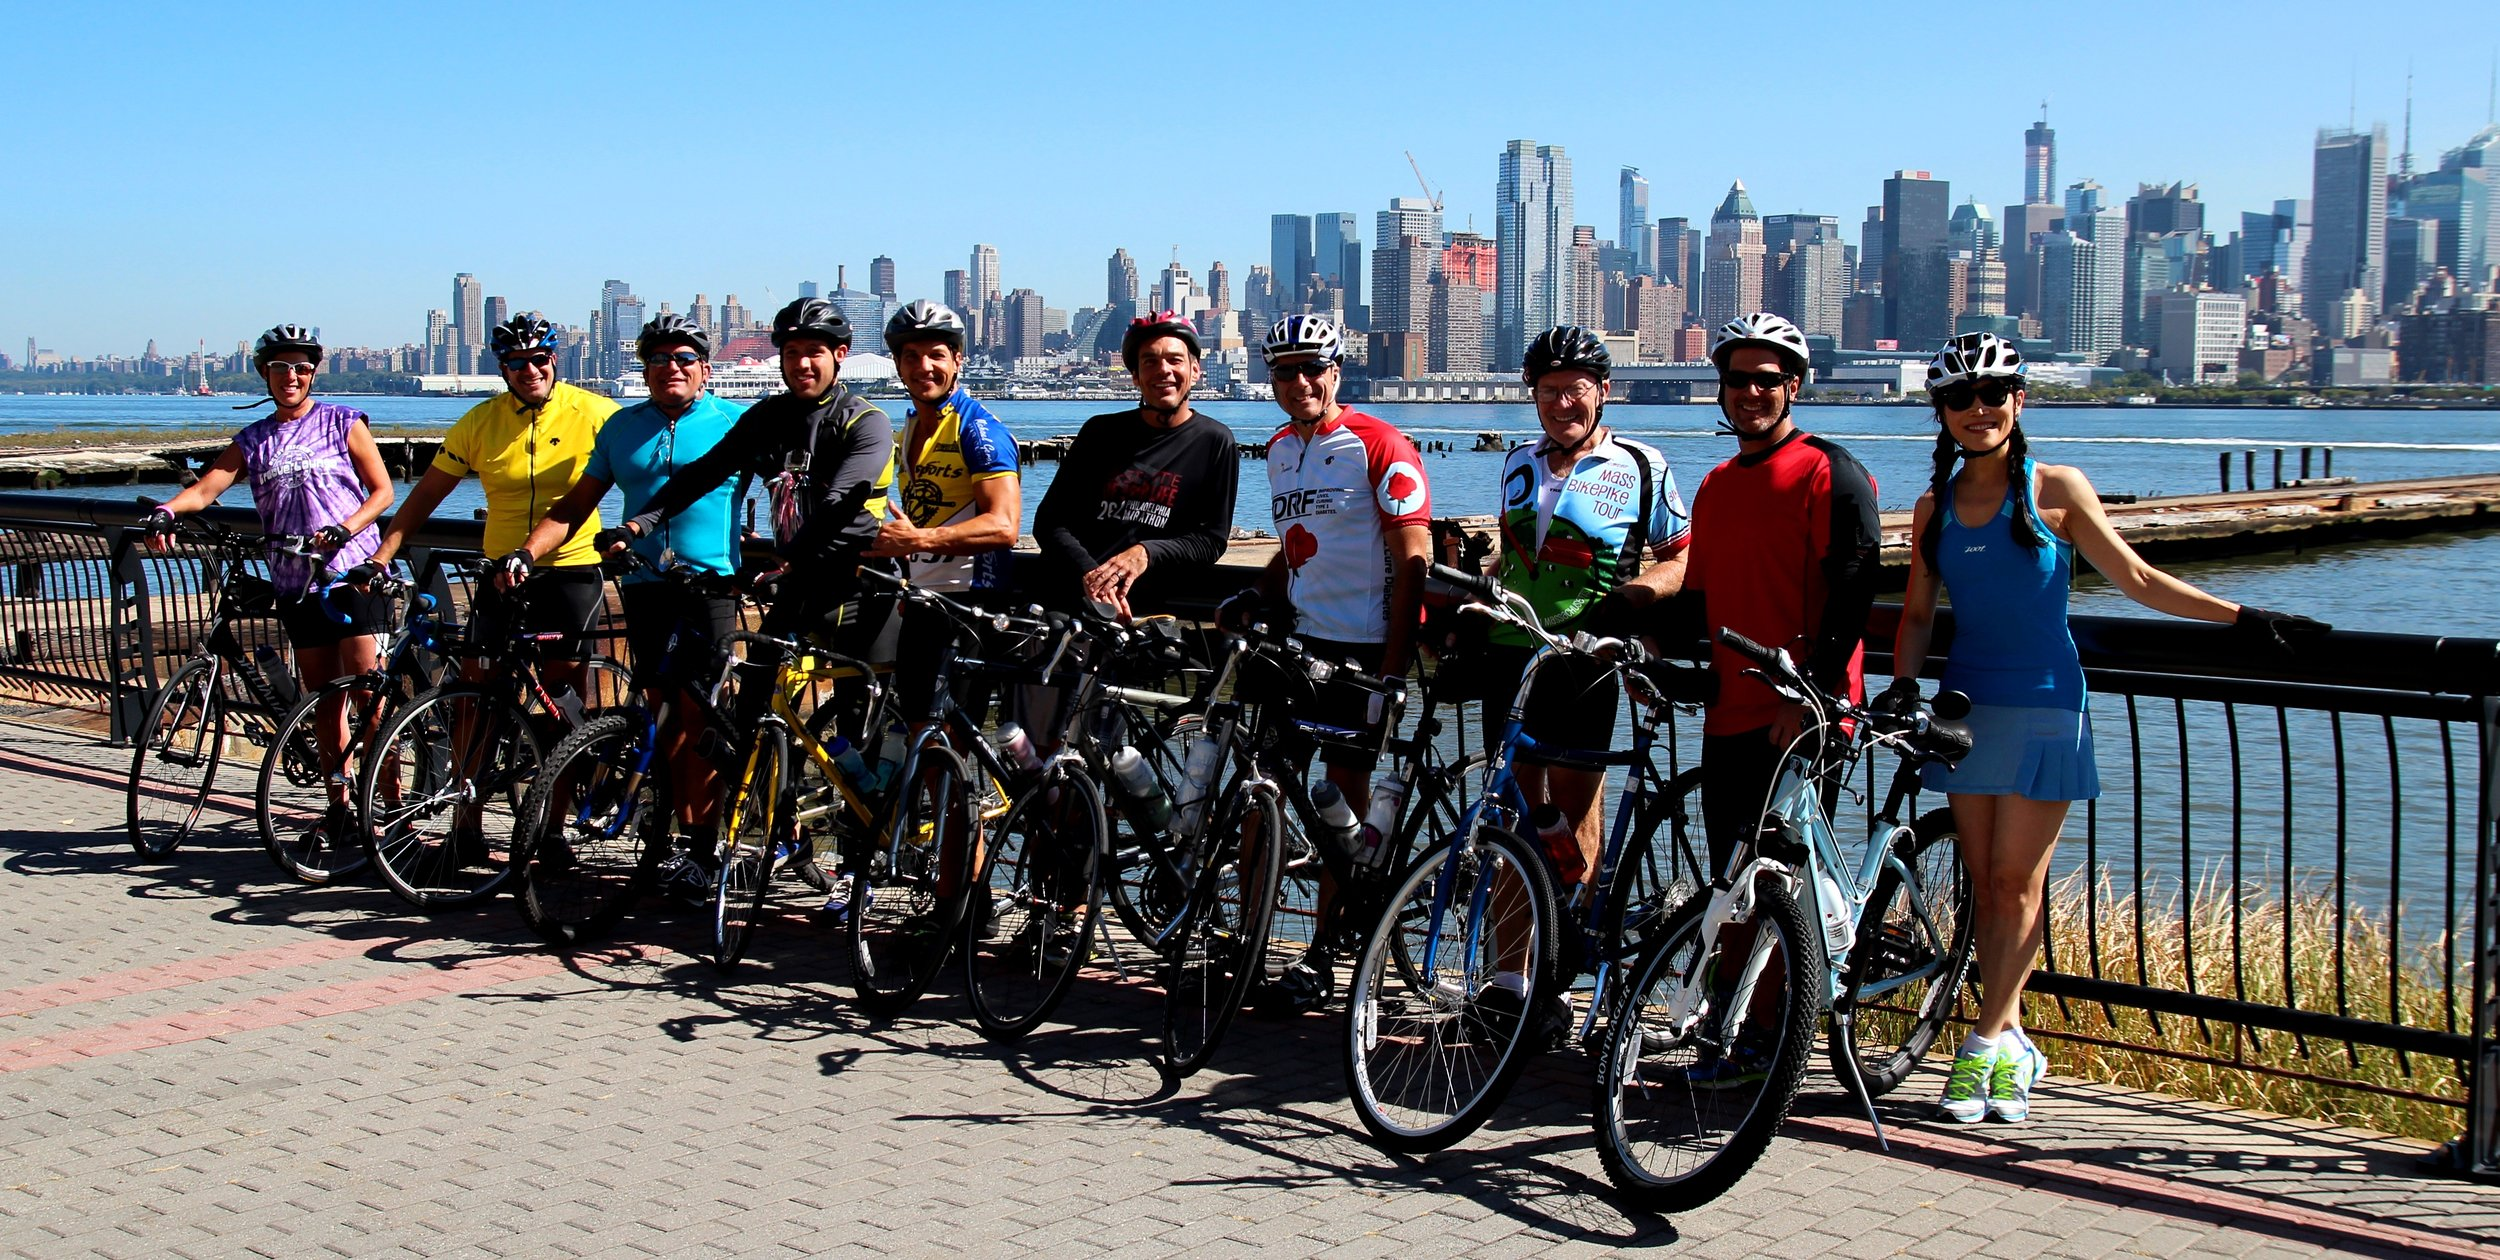 Group Fitness outing in NYC with Marcello. The annual Celebrate Life® Ride in NYC.